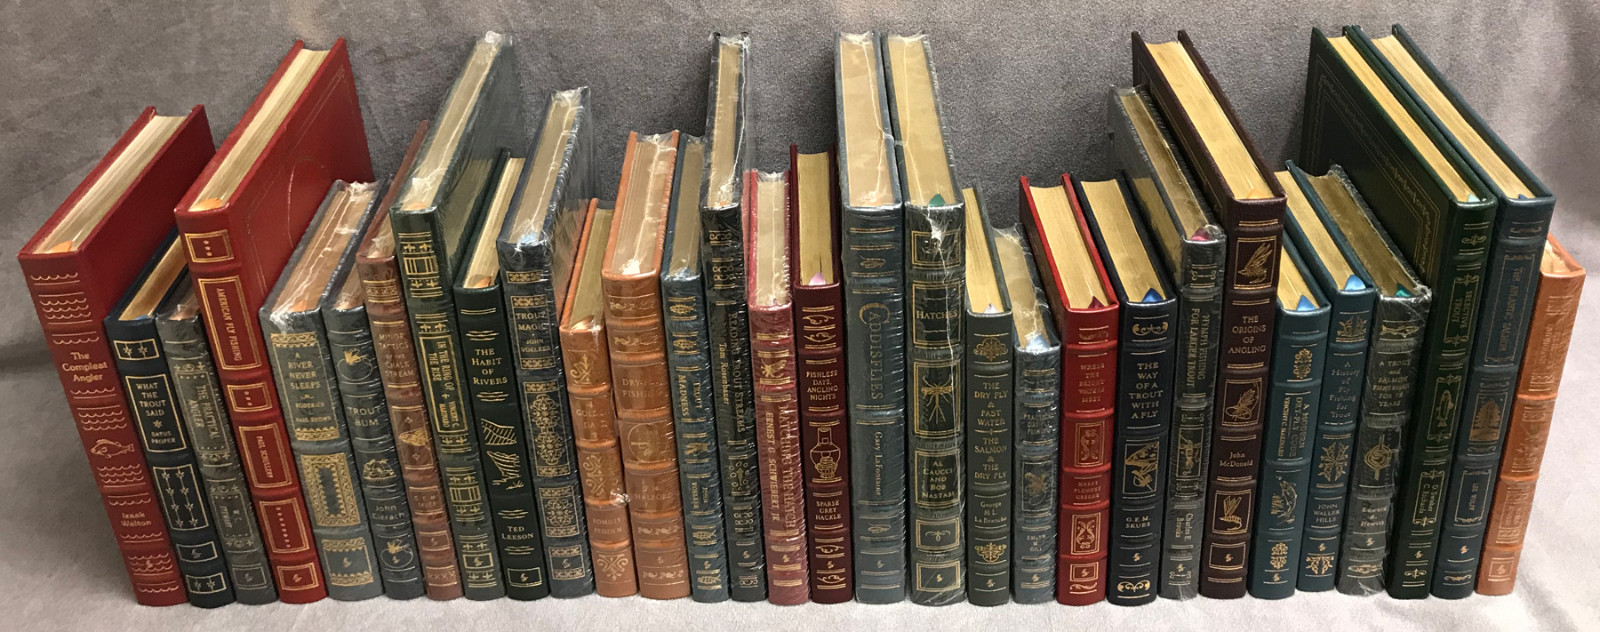 Image 1 of Easton Press Library of Fly-Fishing Classics ~ 30 volumes of 33 ~ Collector's Ed